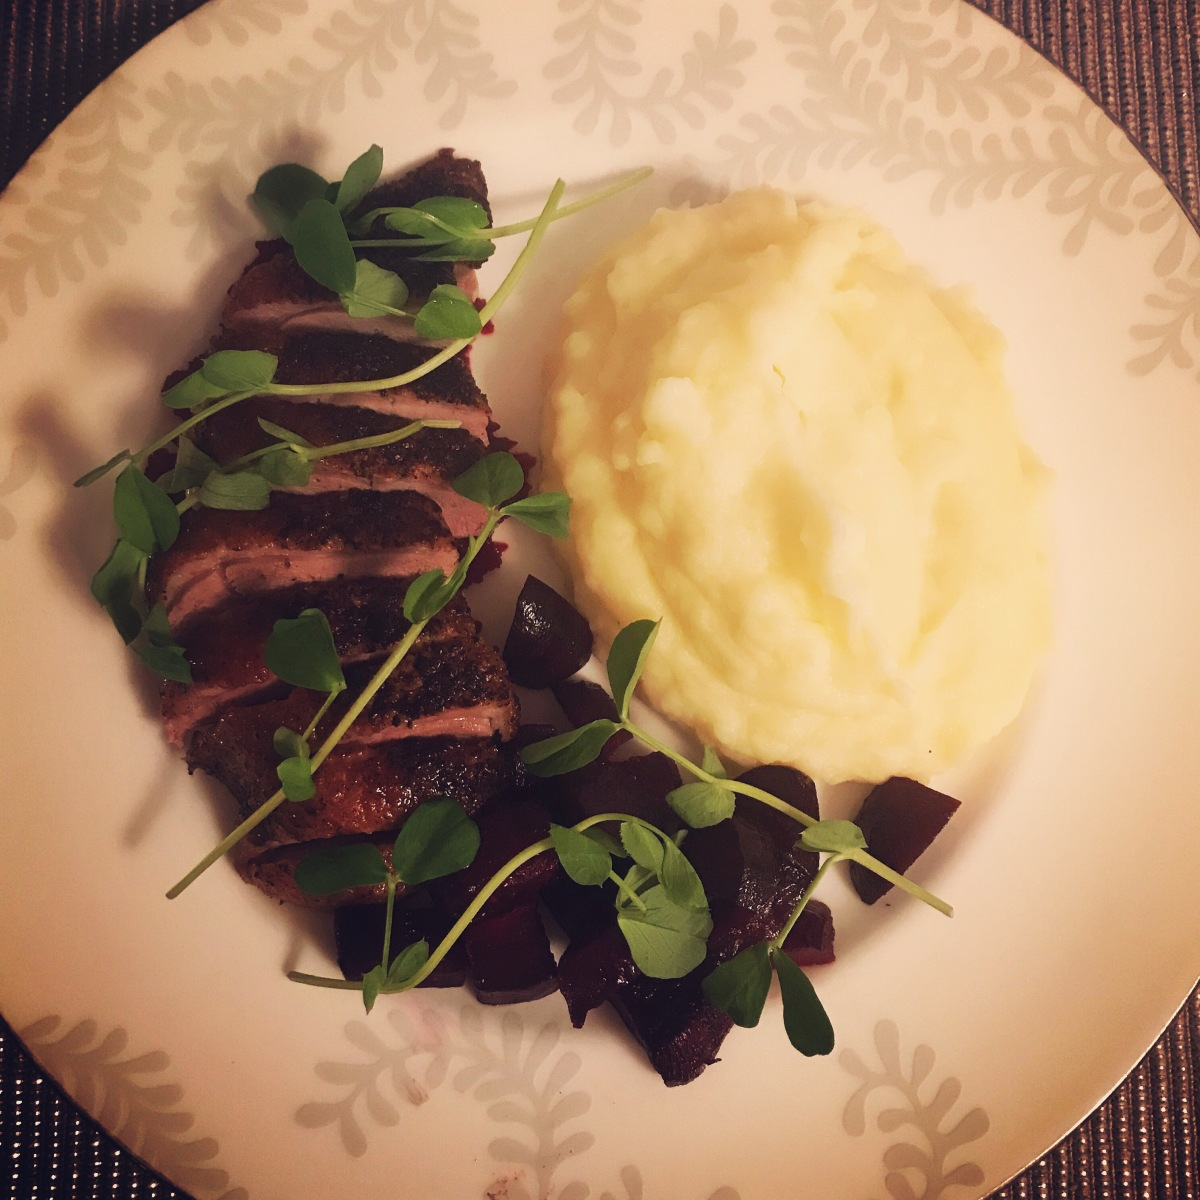 Pan seared, oven roasted duck breast with garlic potato mash and roasted beetroot